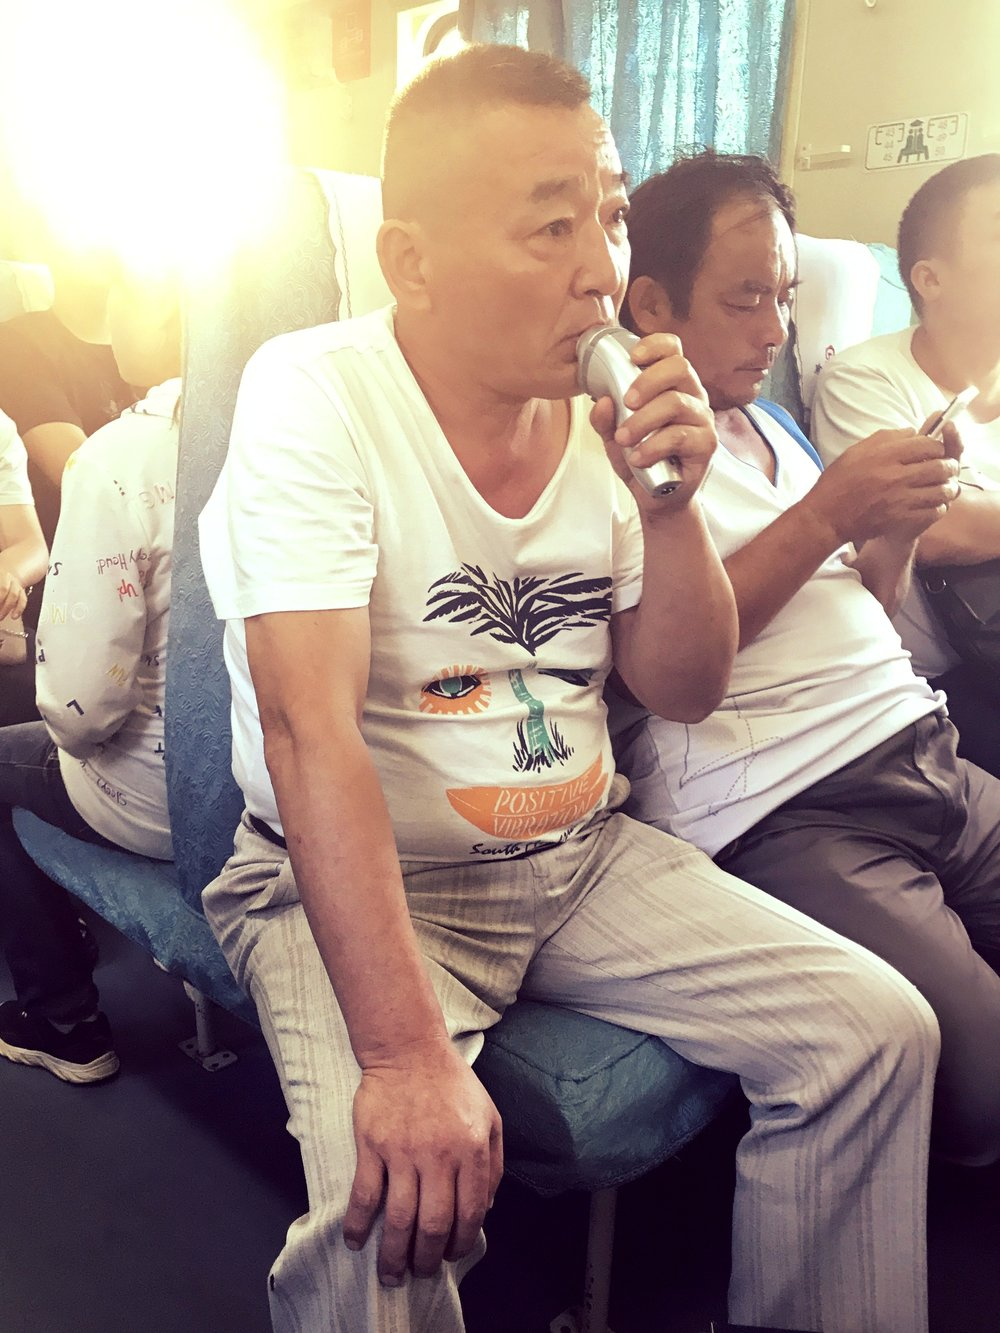 CHINESE MAN SHAVING ON THE TRAIN